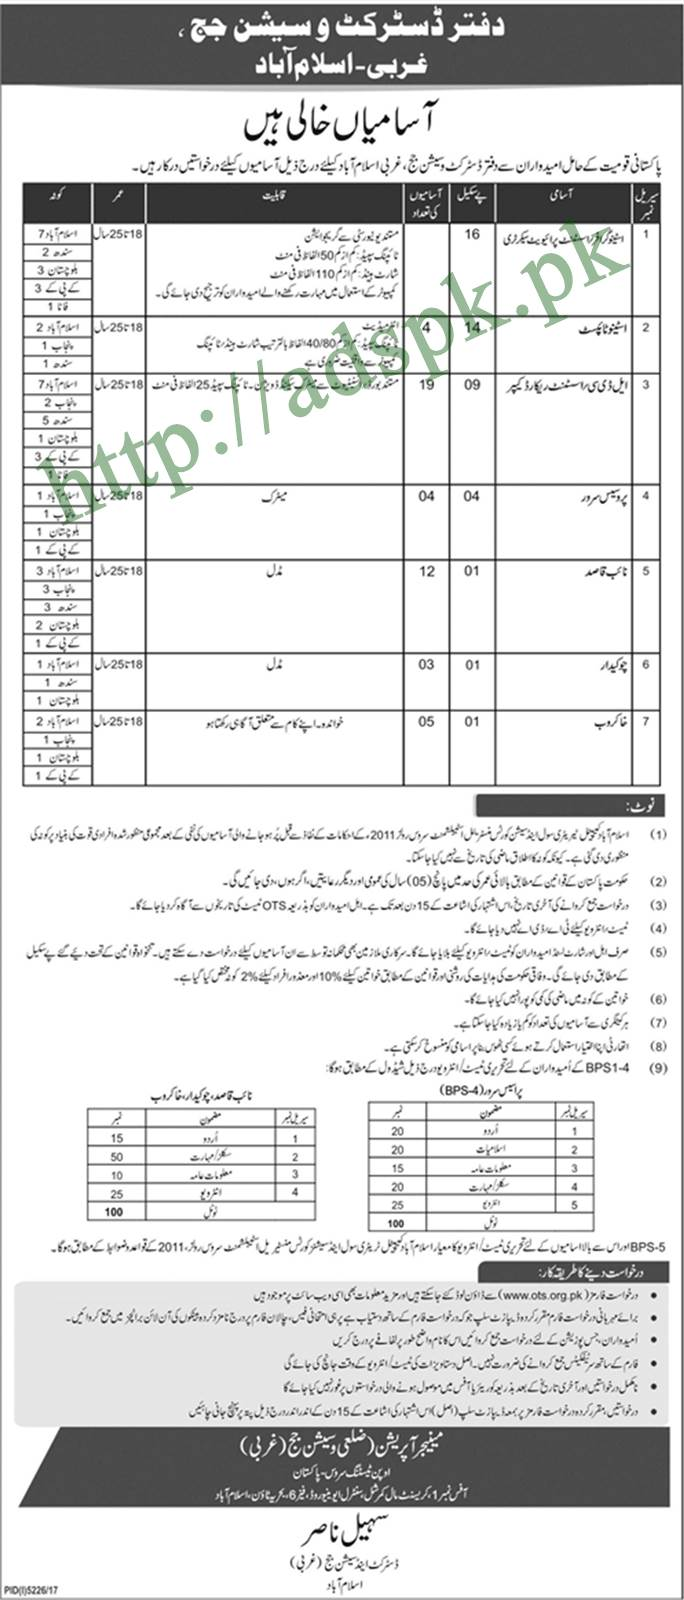 District & Session Judge West Islamabad Office Jobs 2018 OTS Written Test MCQs Syllabus Paper Stenographer Assistant Private Secretary Steno Typist LDC Assistant Record Keeper Process Server Naib Qasid Chowkidar Sweeper Jobs Application Form Deadline 10-04-2018 Apply Now by Open Testing Service